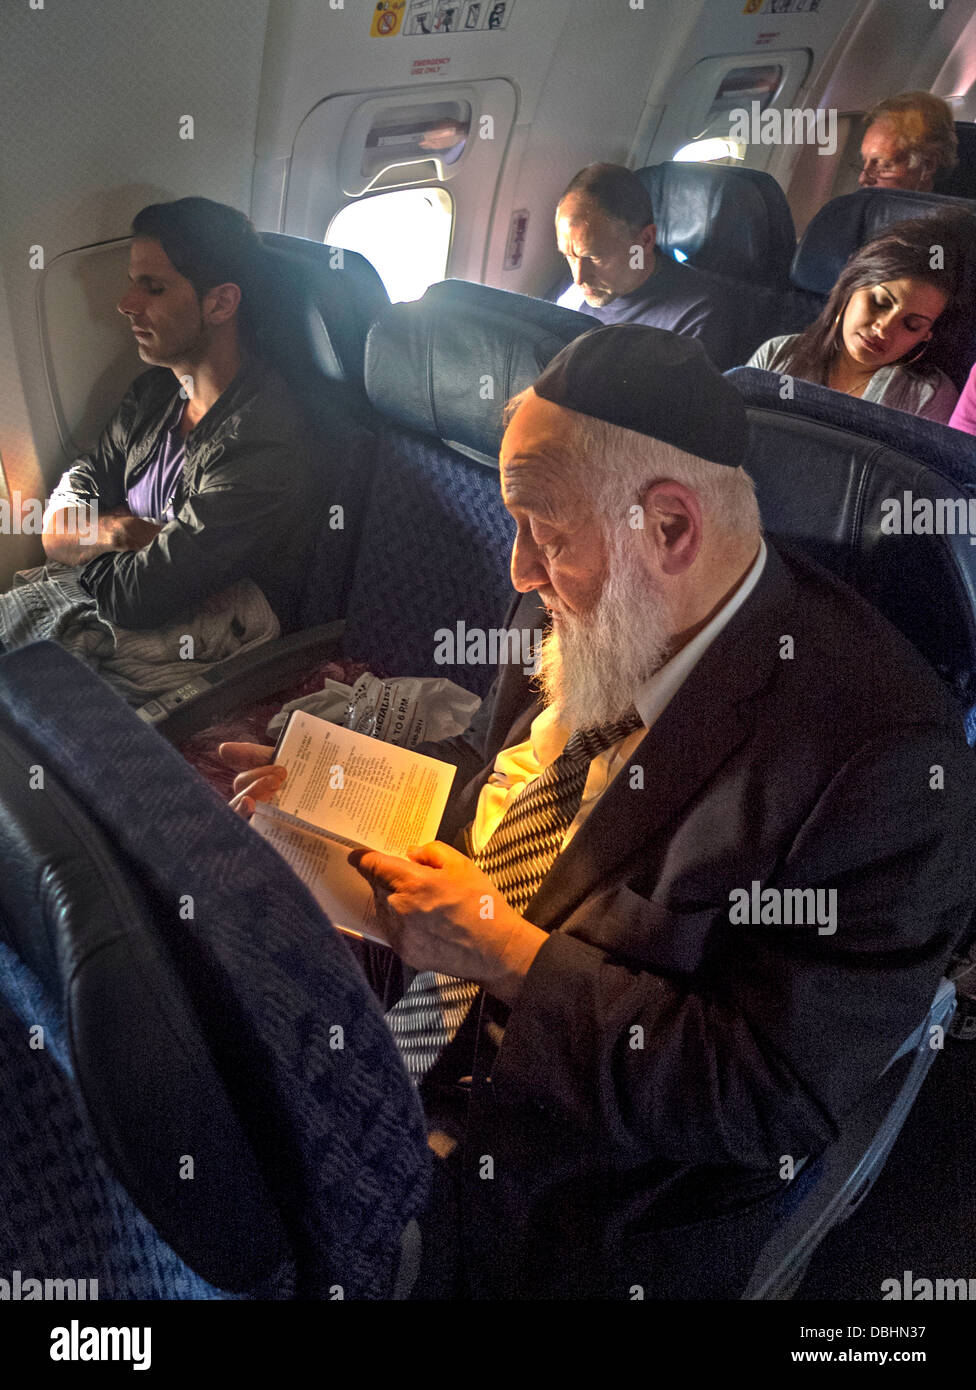 Wearing a yarmulke skull cap, an bearded Orthodox Jew reads from a book in Hebrew on an airliner - Stock Image